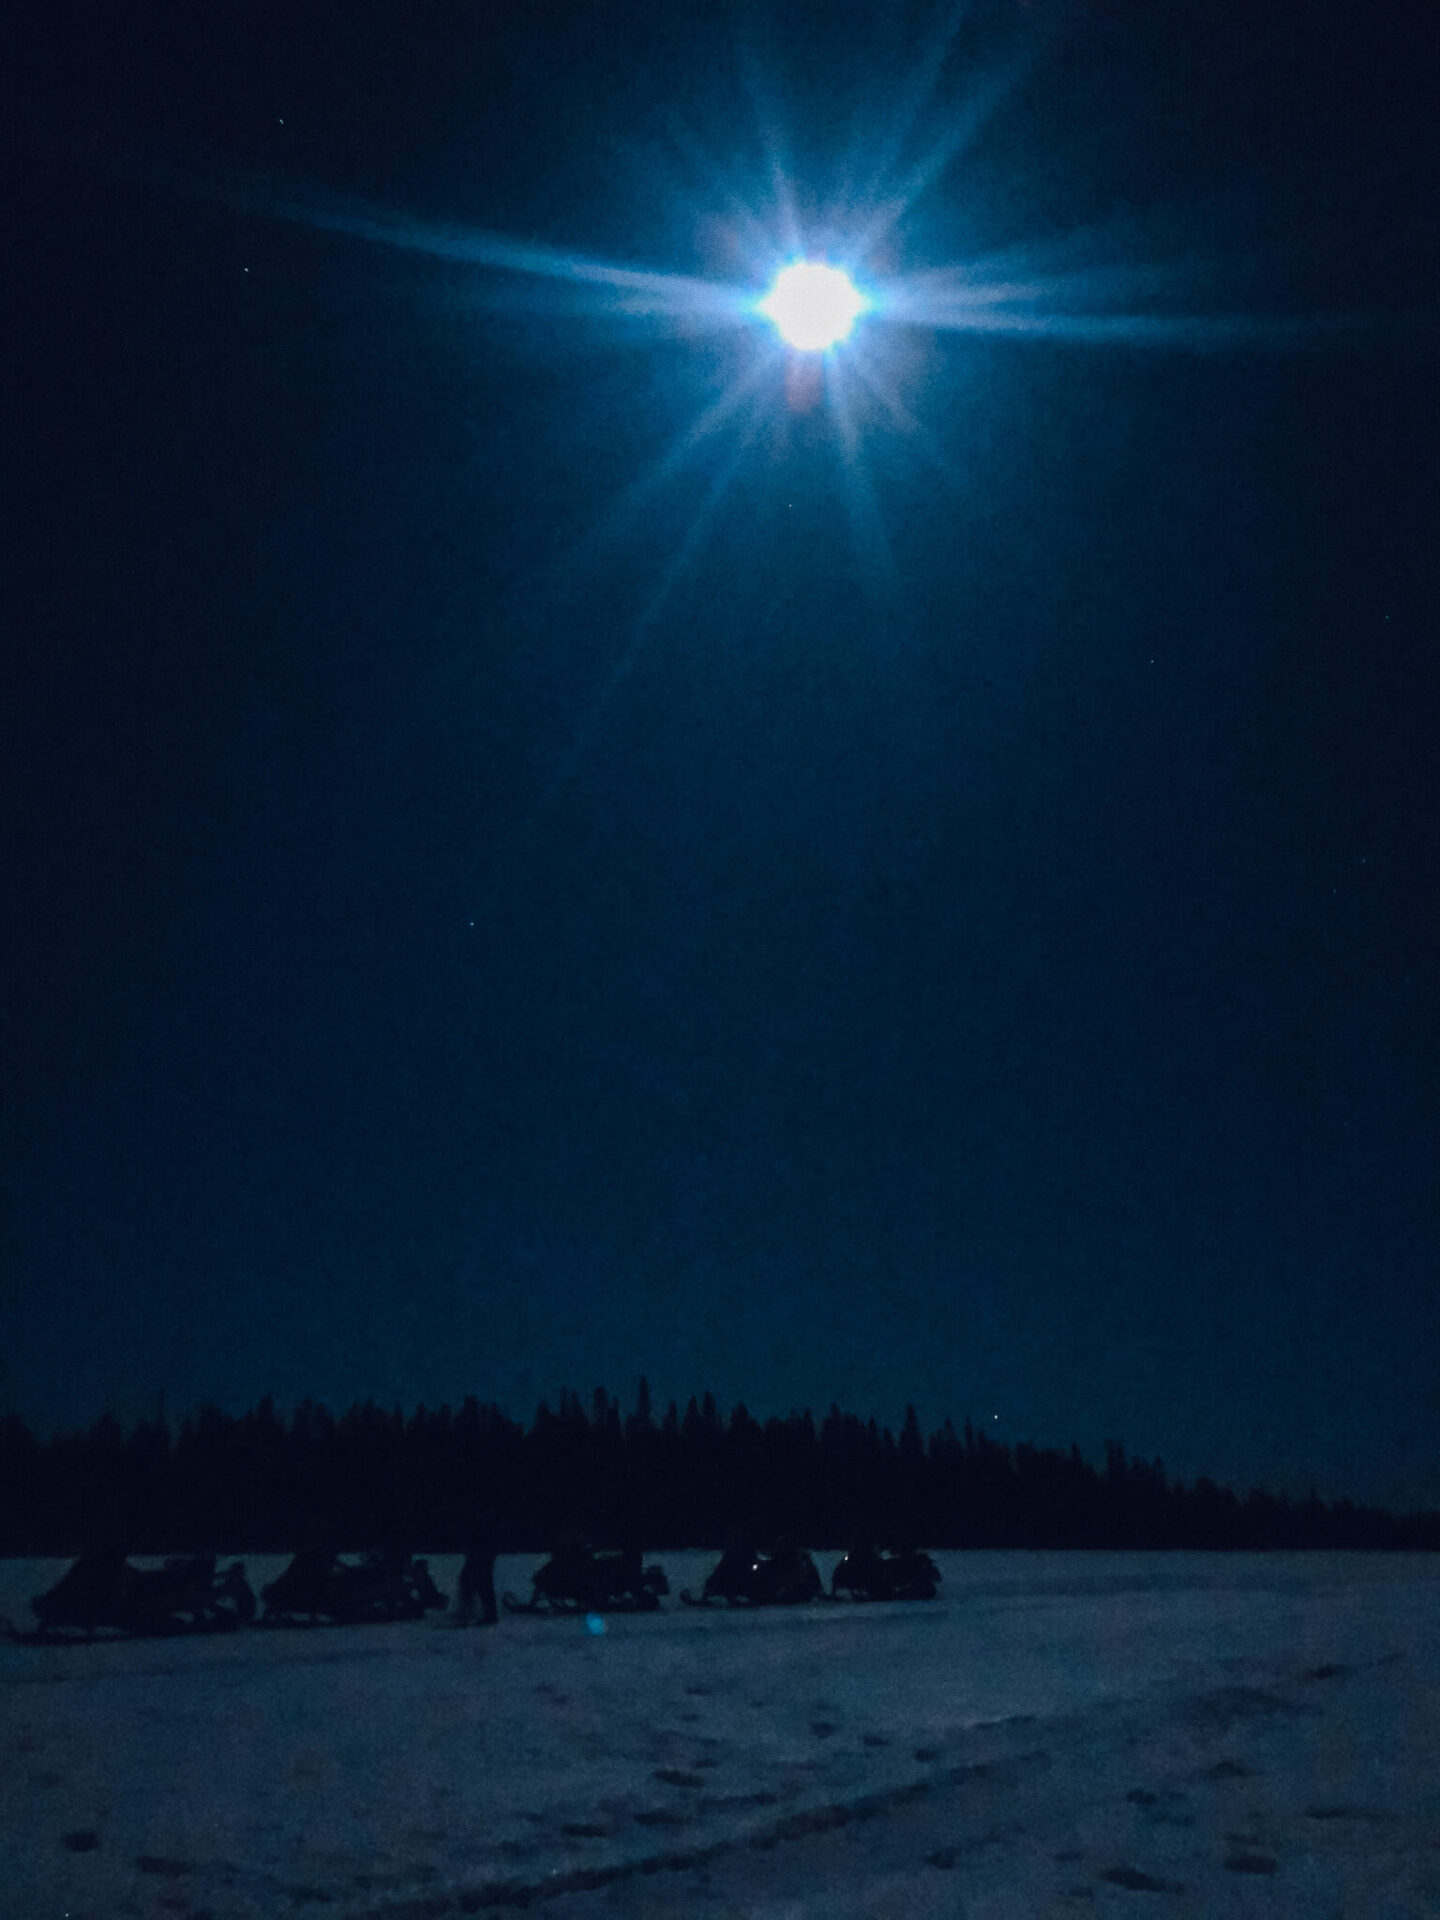 The moon over snowmobiles sitting on snow